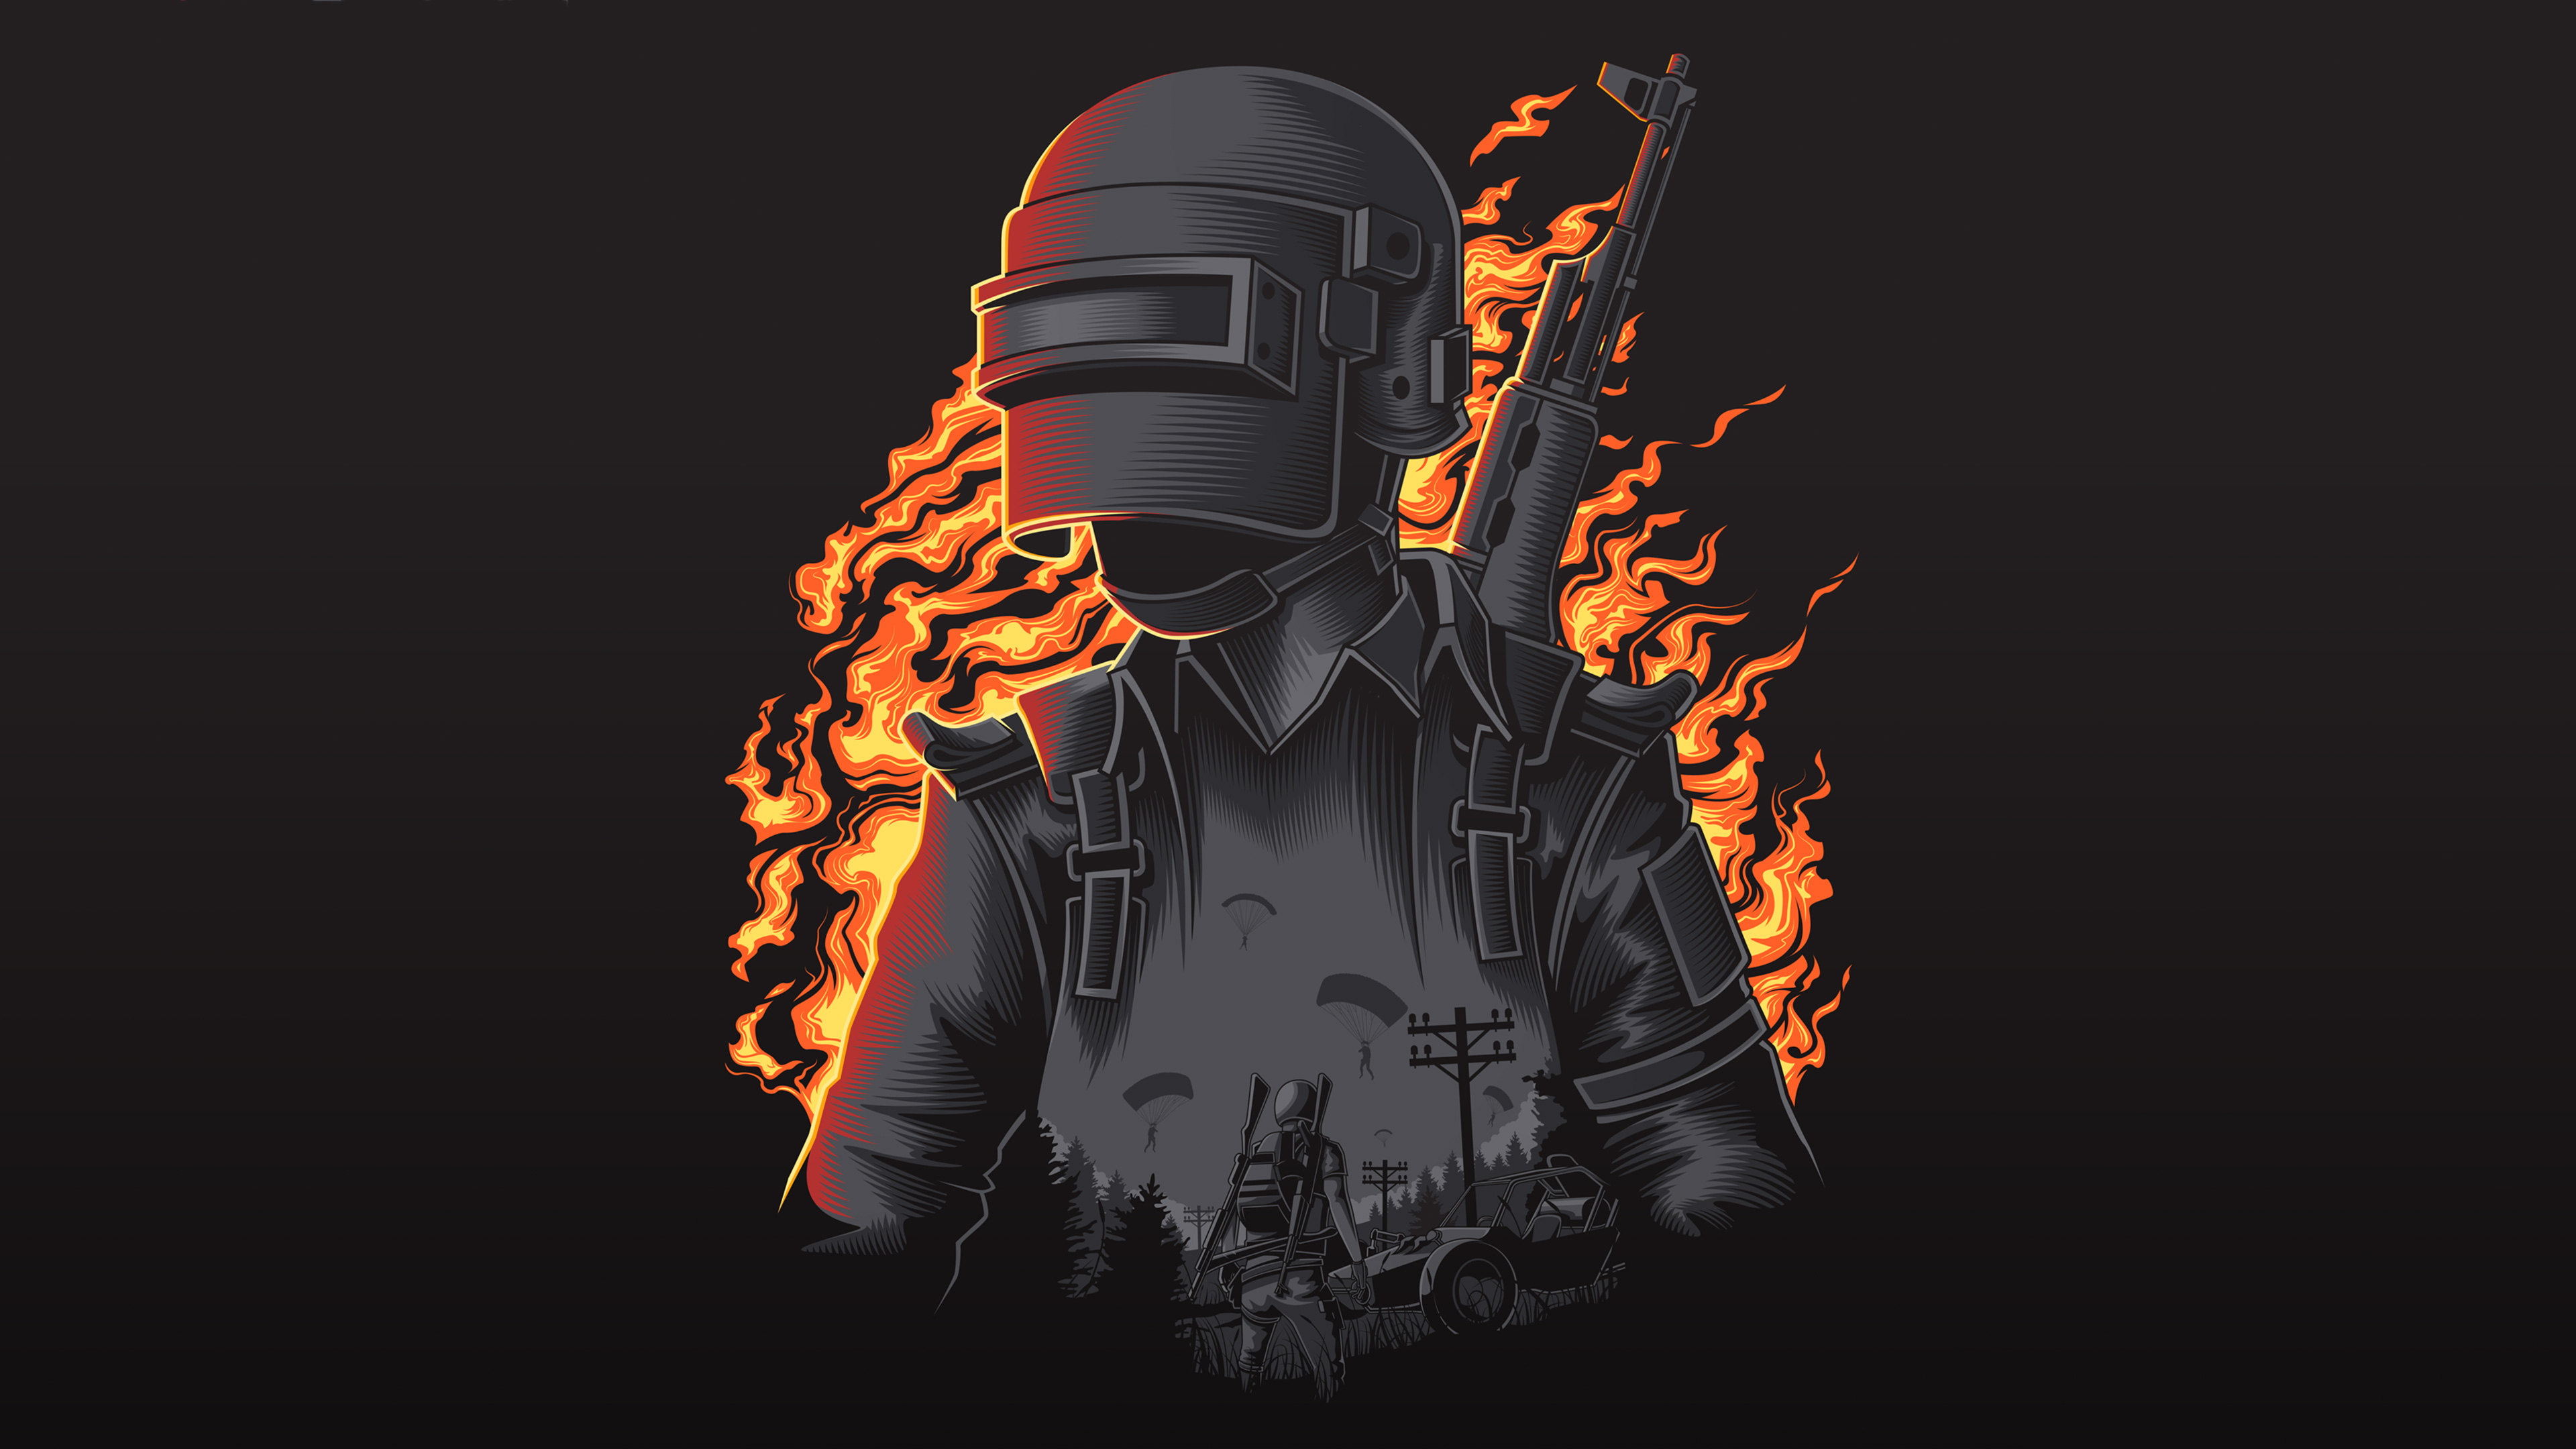 Pubg Wallpaper Themes: Pubg Illustration 4k, HD Games, 4k Wallpapers, Images